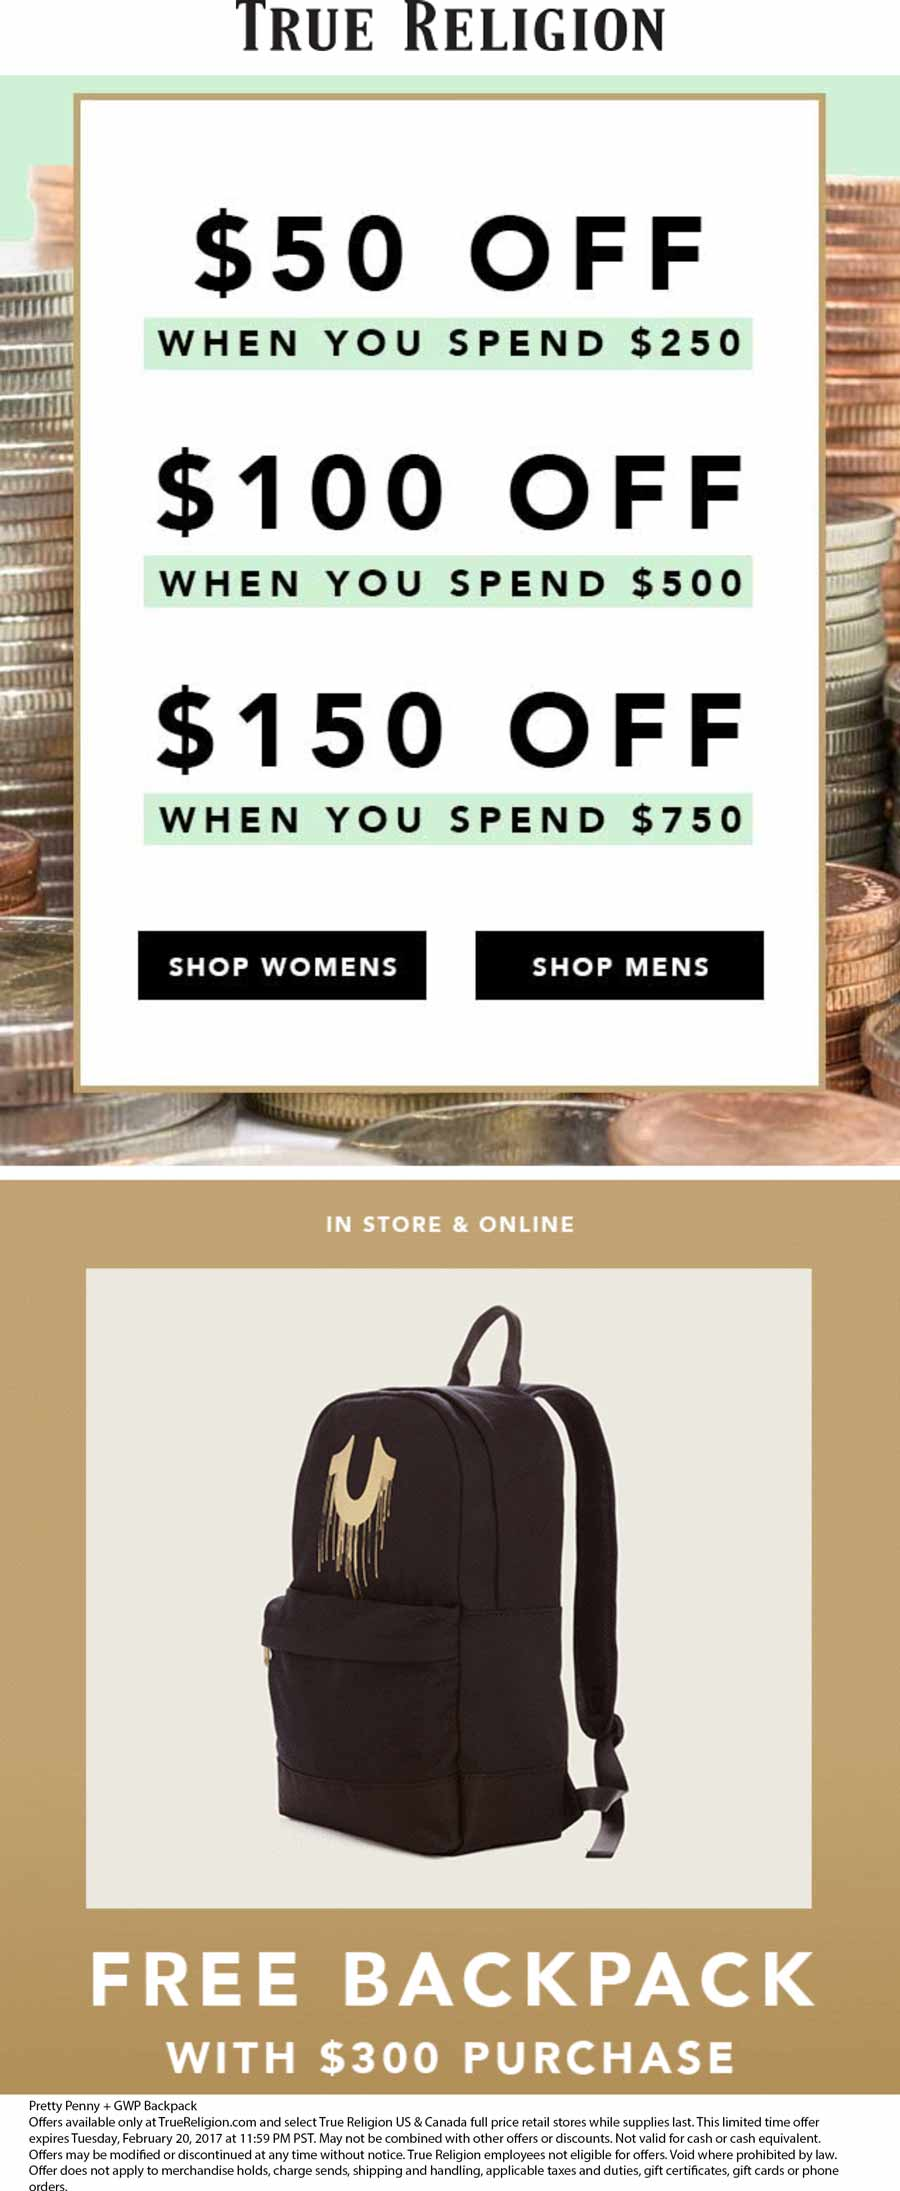 0be8154cb True Religion Coupon June 2019  50 off  250   more + free backpack on  300  at